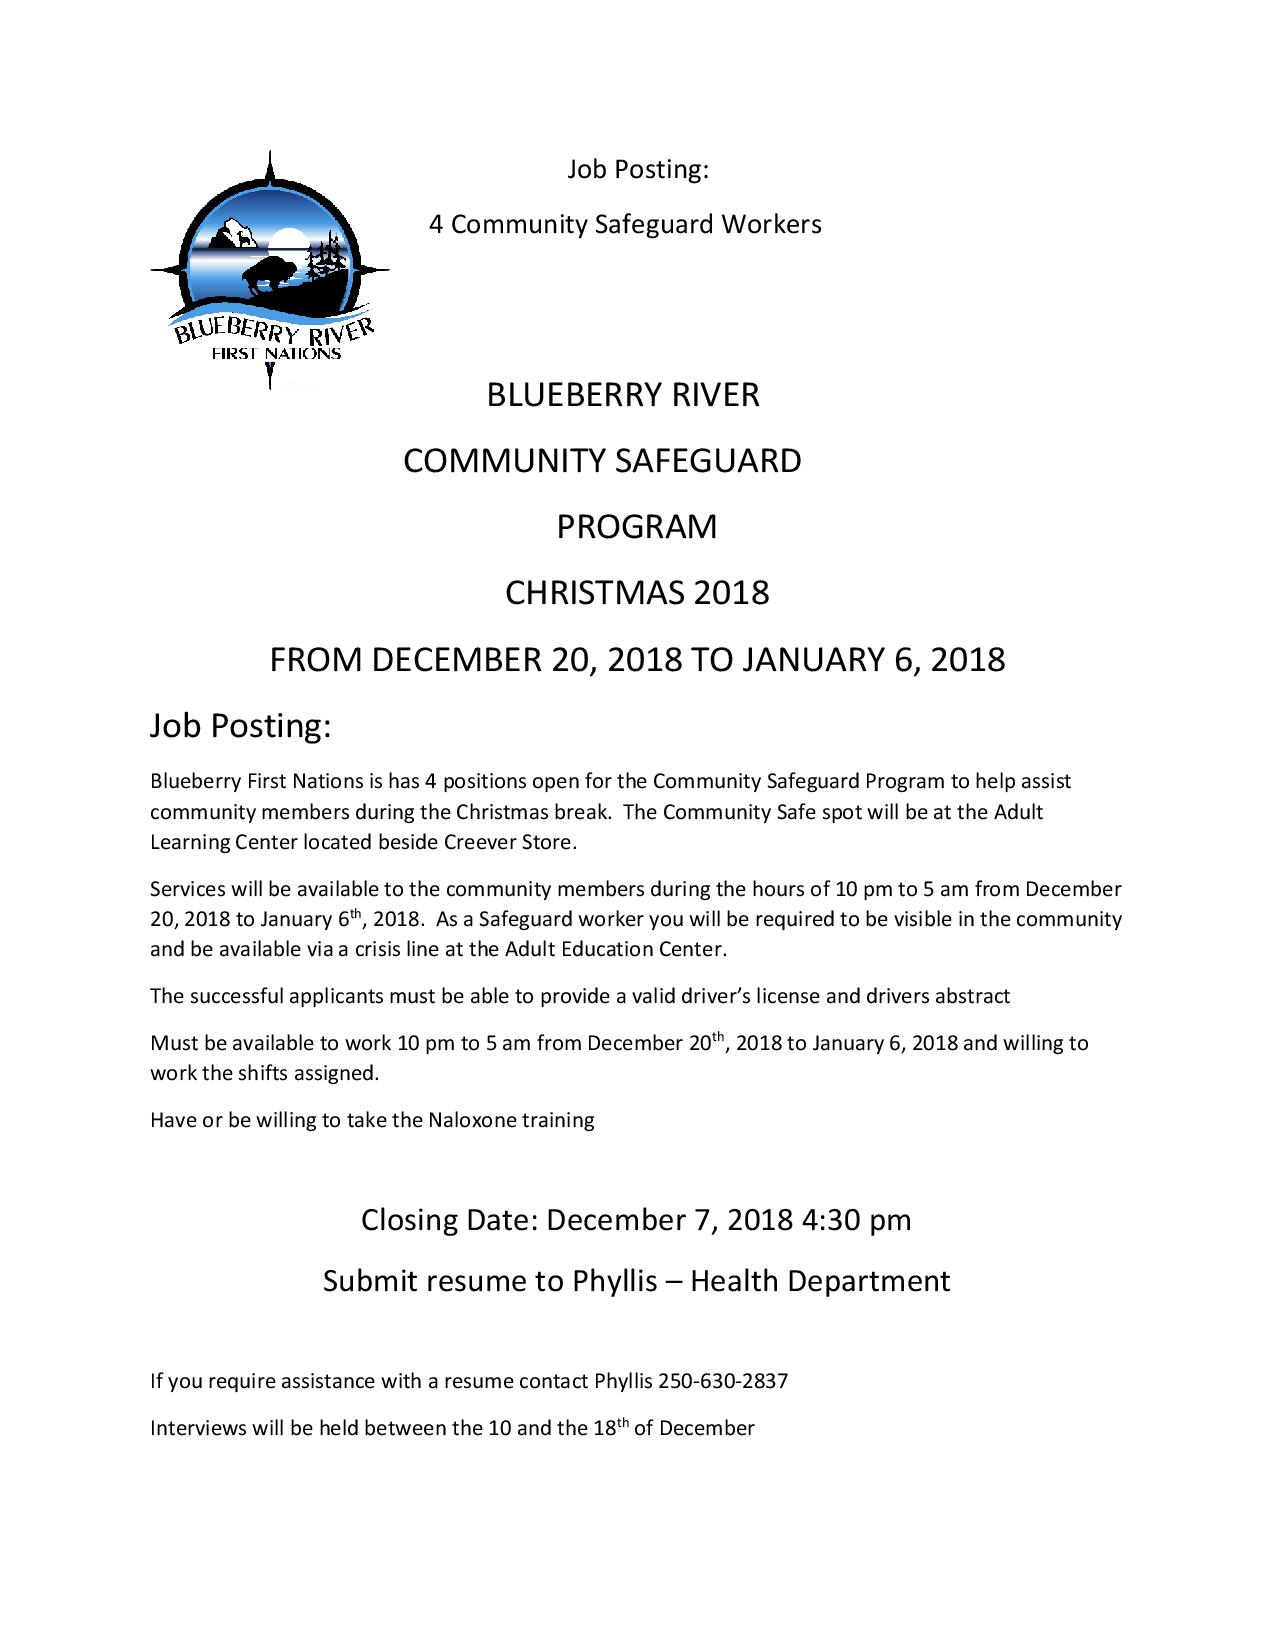 community safe guard objective letter christmas 2018-page-001